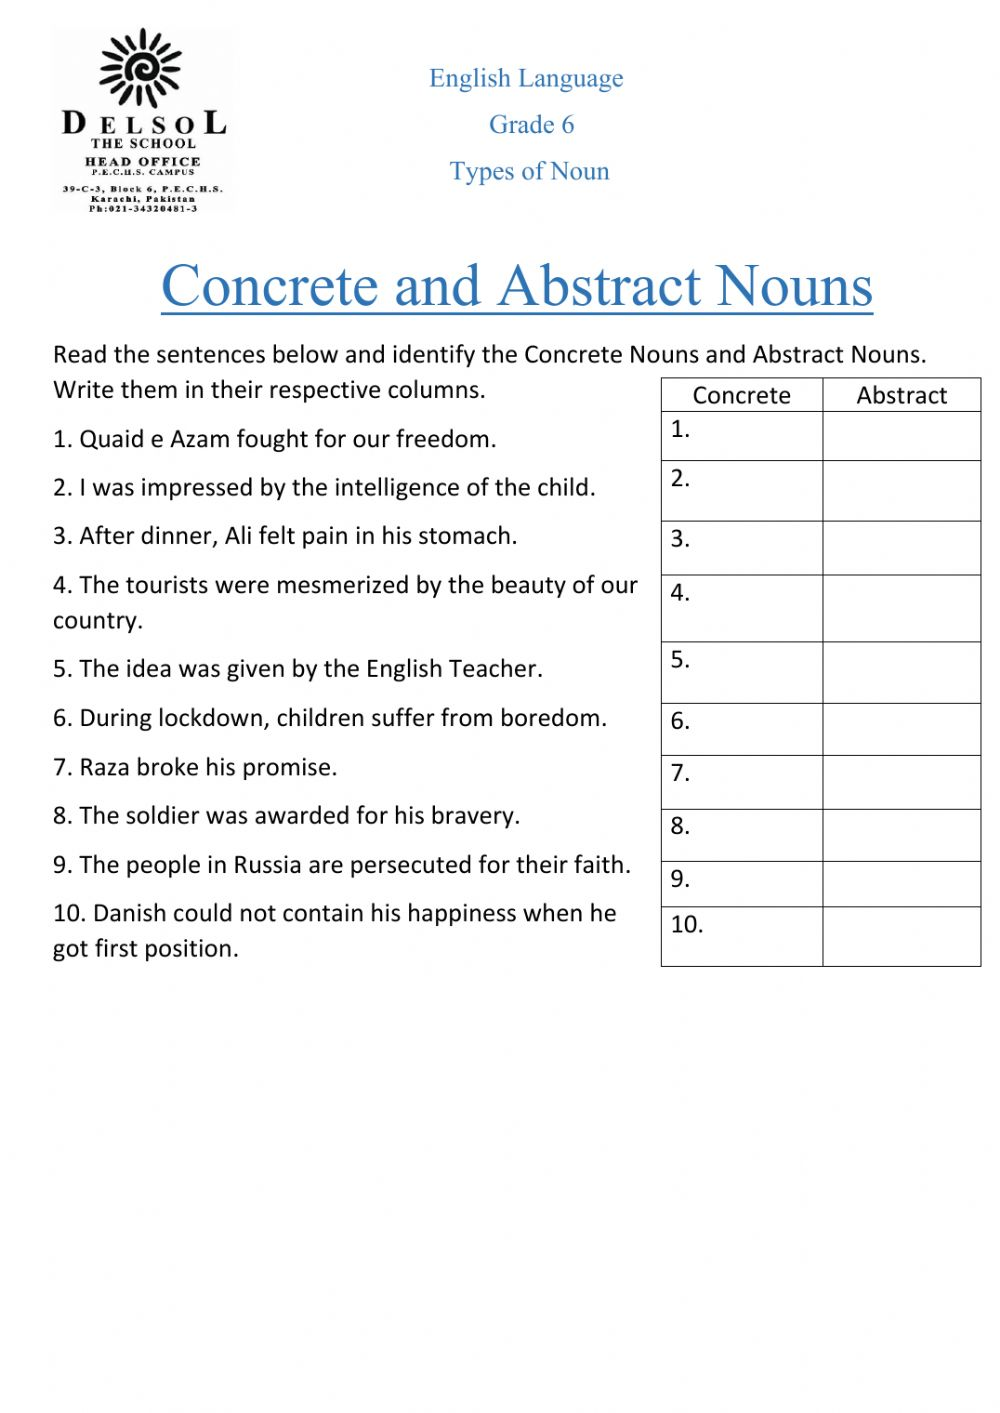 Concrete Abstract Nouns Worksheet